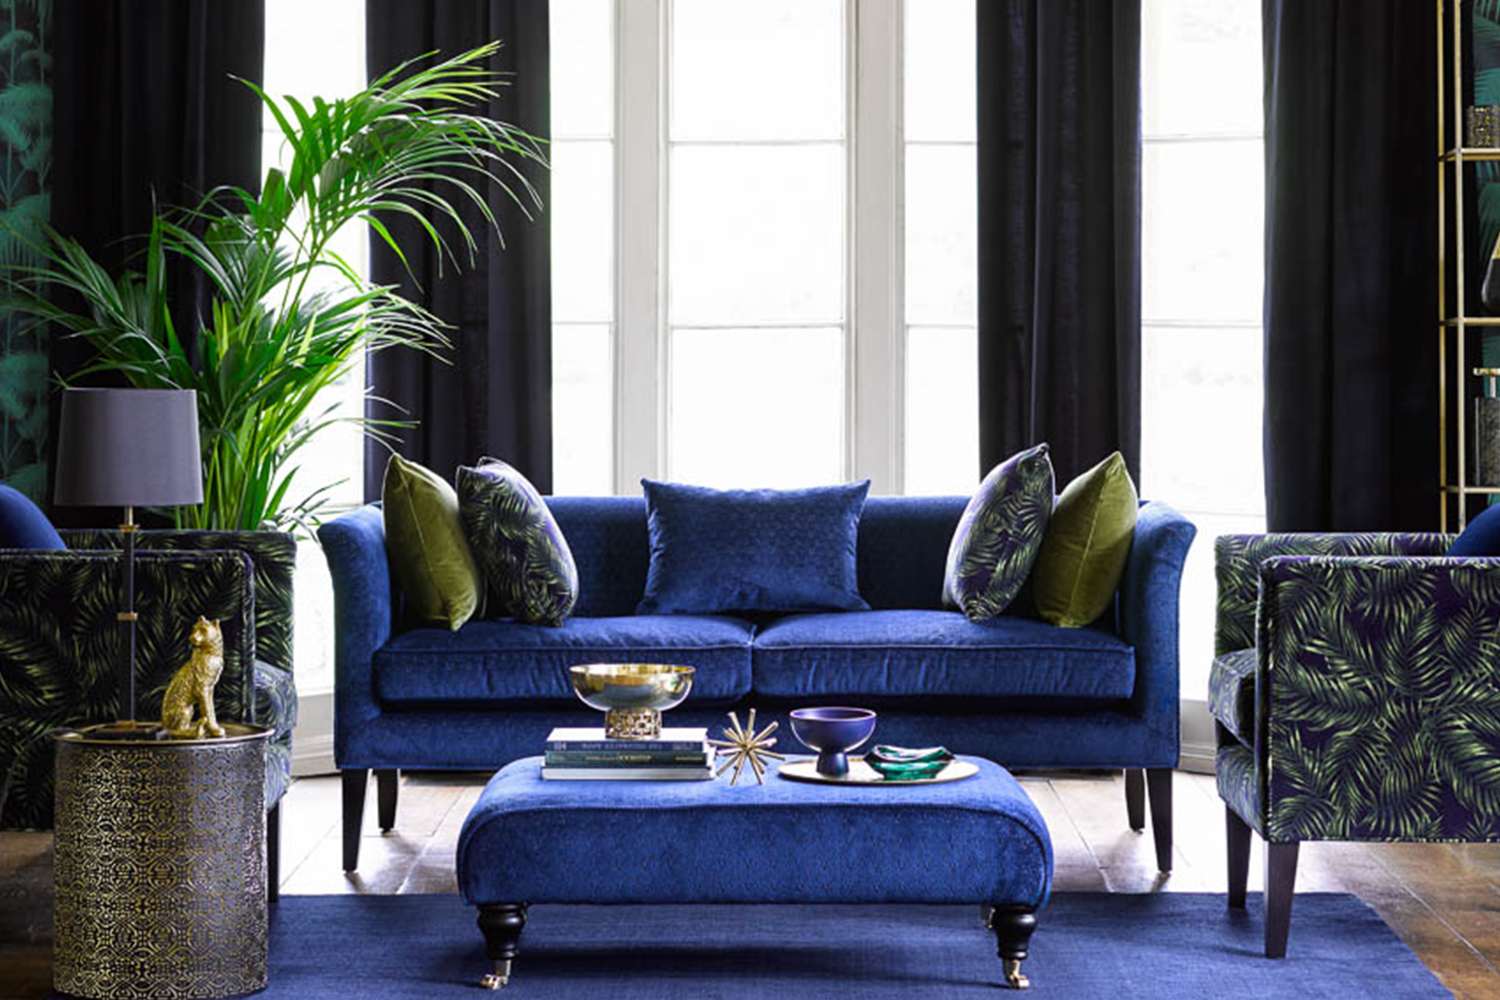 Biba collaboration with sofa.com